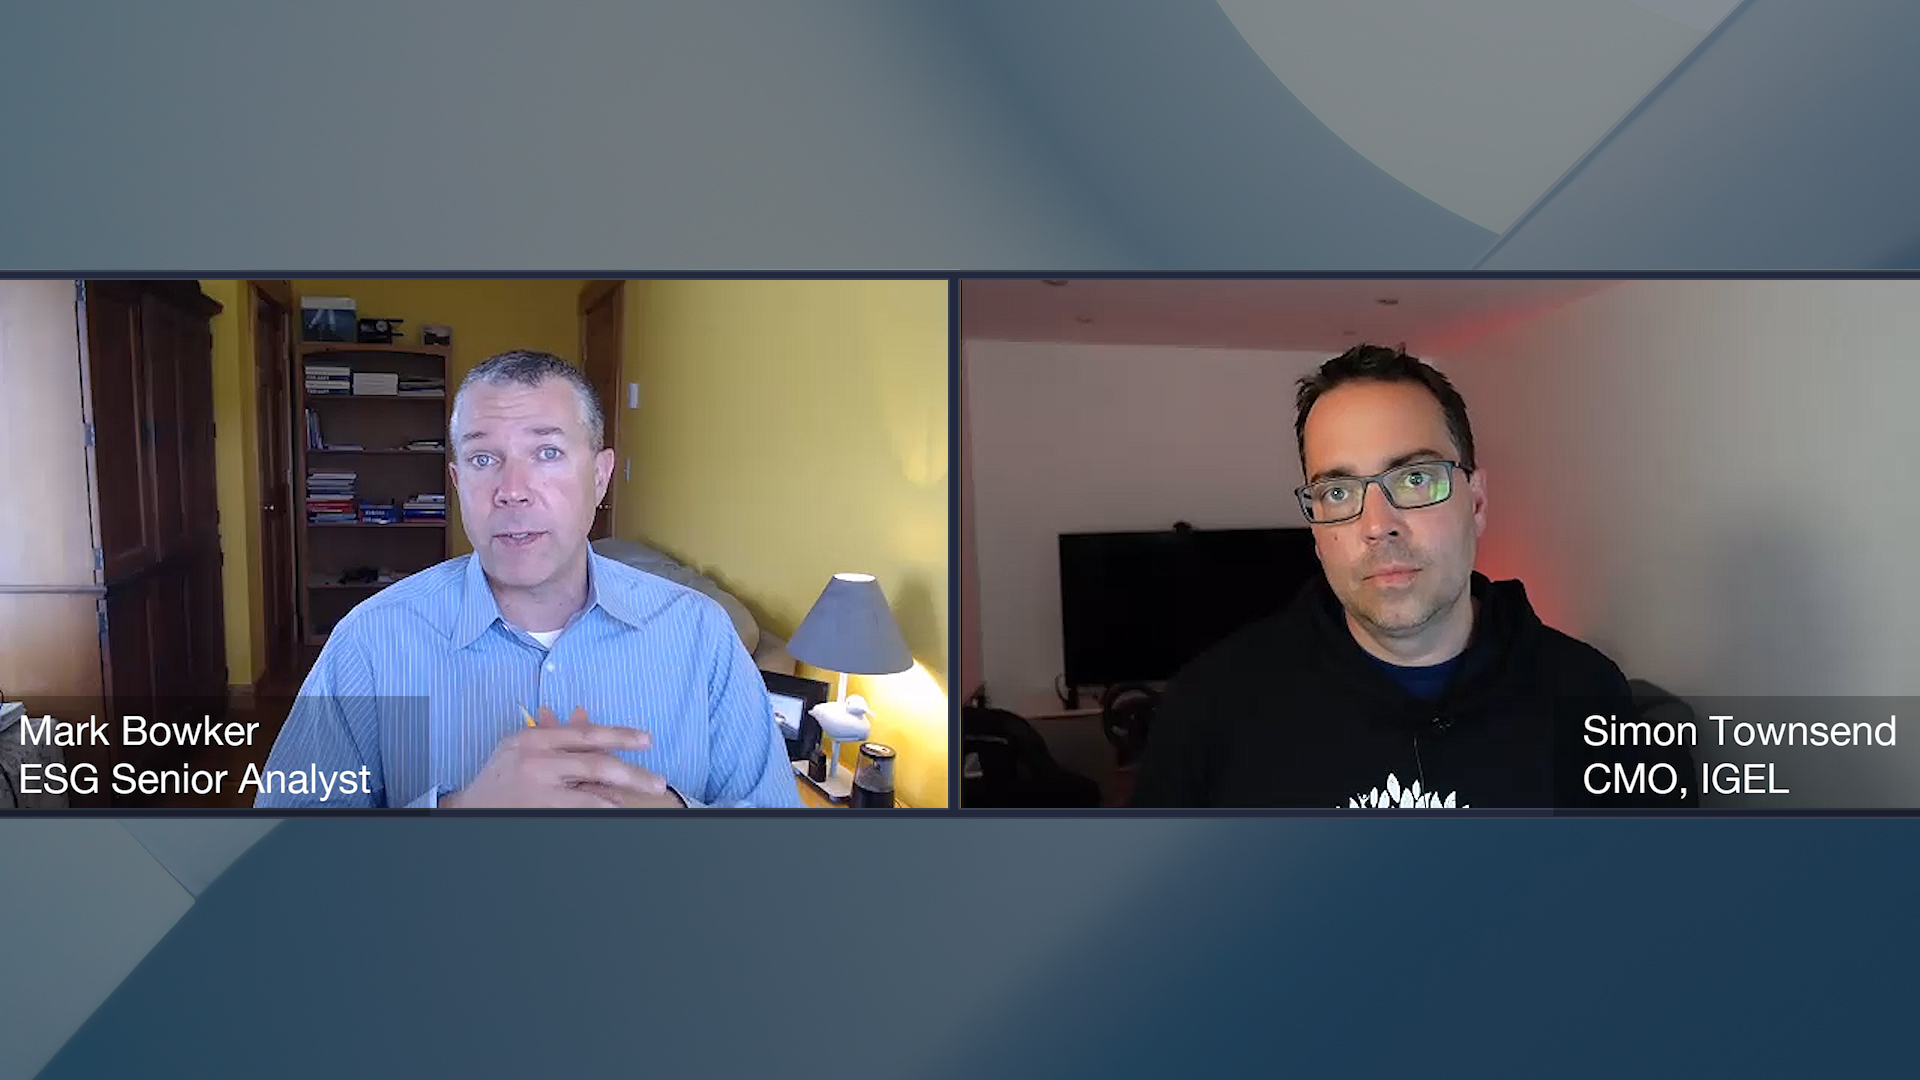 ESG360 Video: Digital Workspace Ecosystem Conversation with Simon Townsend of IGEL